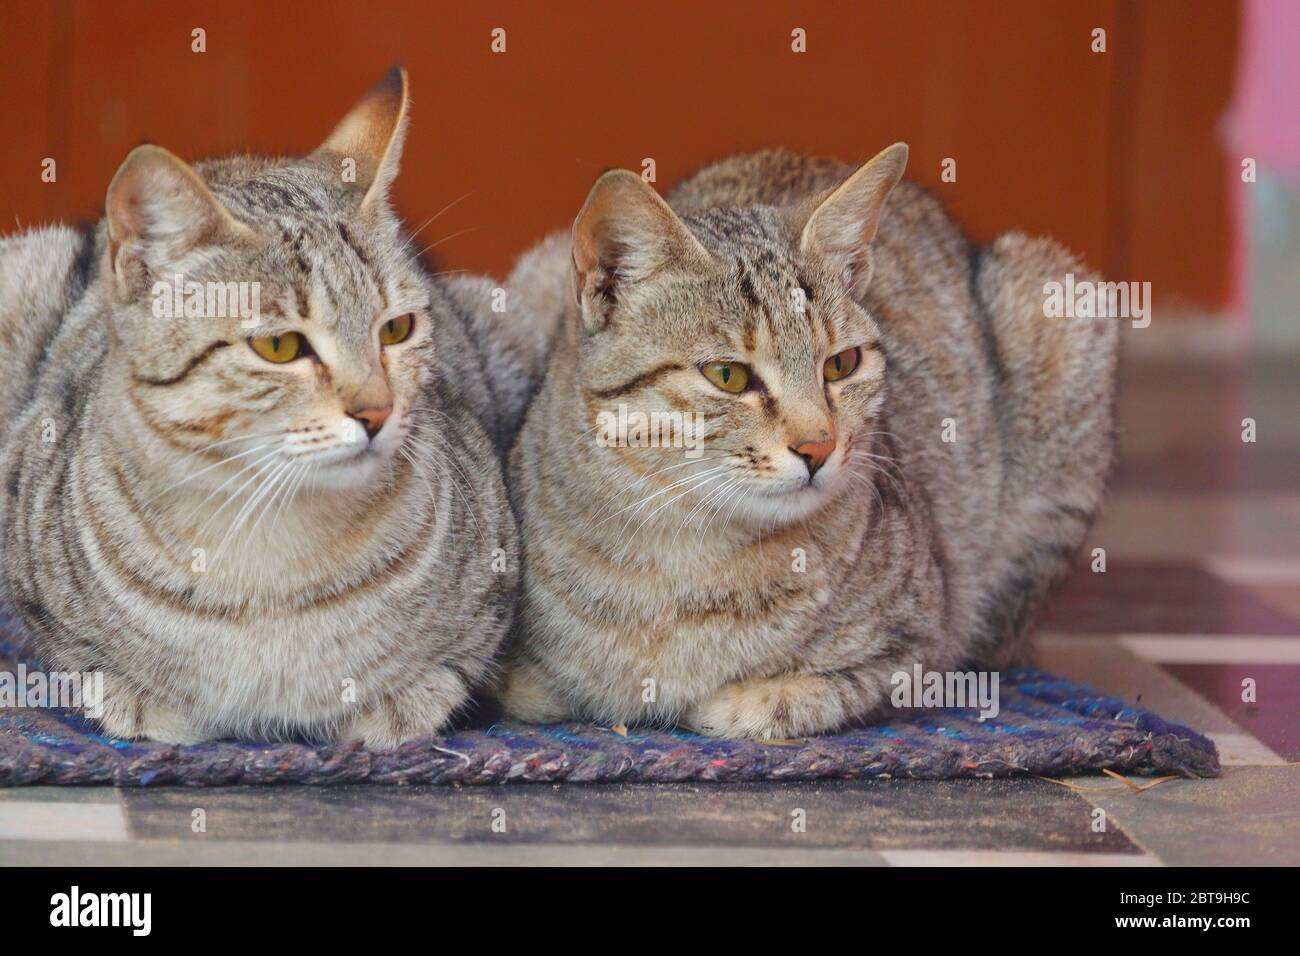 close up of two cats sitting on cloth at home Stock Photo